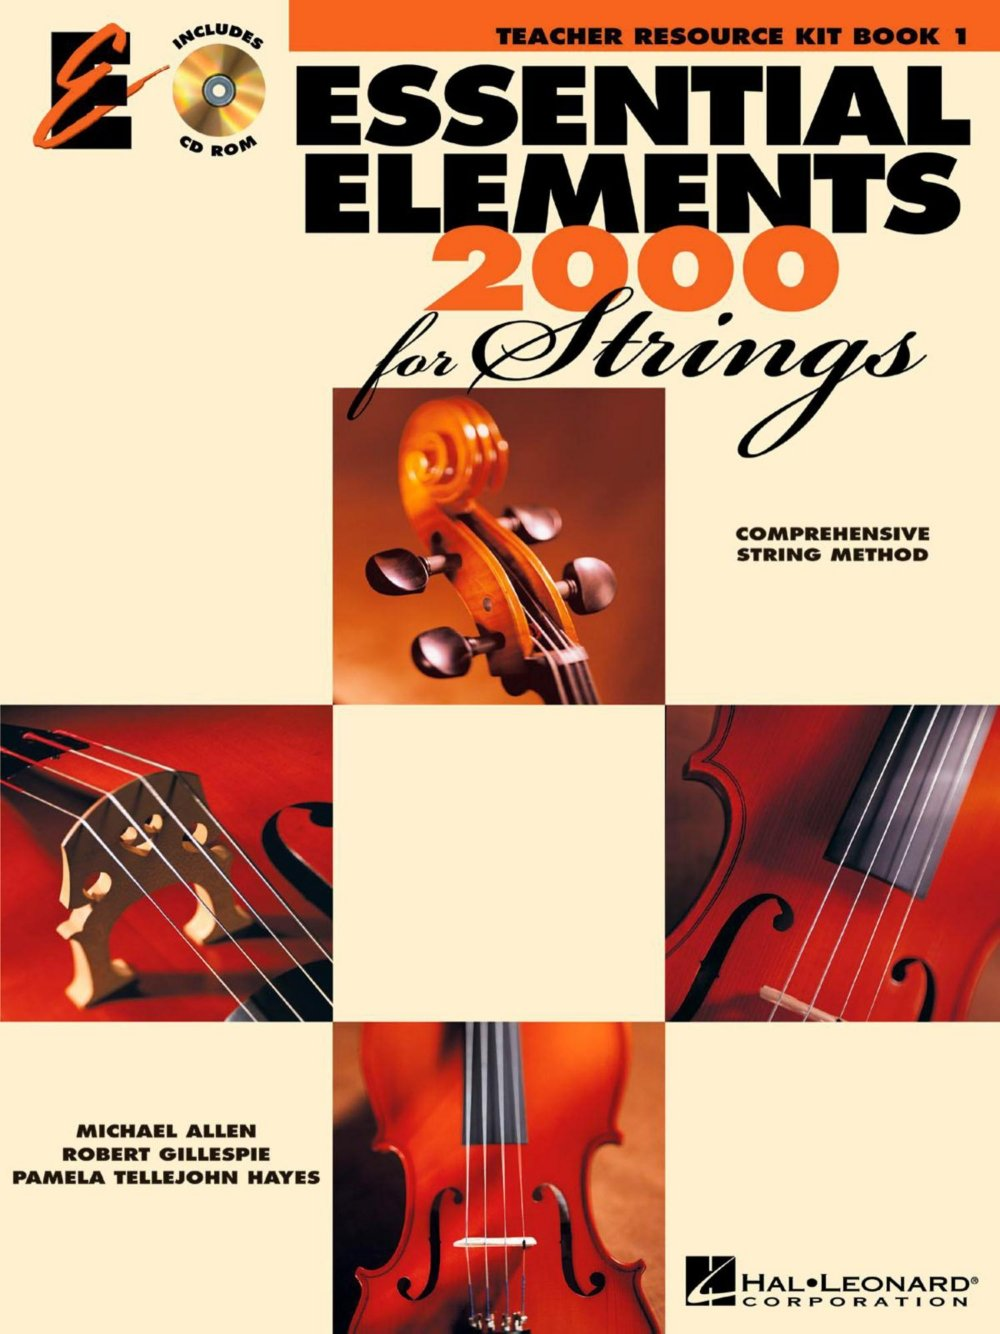 Amazon.com: Hal Leonard Essential Elements 2000 for Strings - Teacher  Resource Kit (Book 1 with CD-ROM): Hal Leonard: Musical Instruments